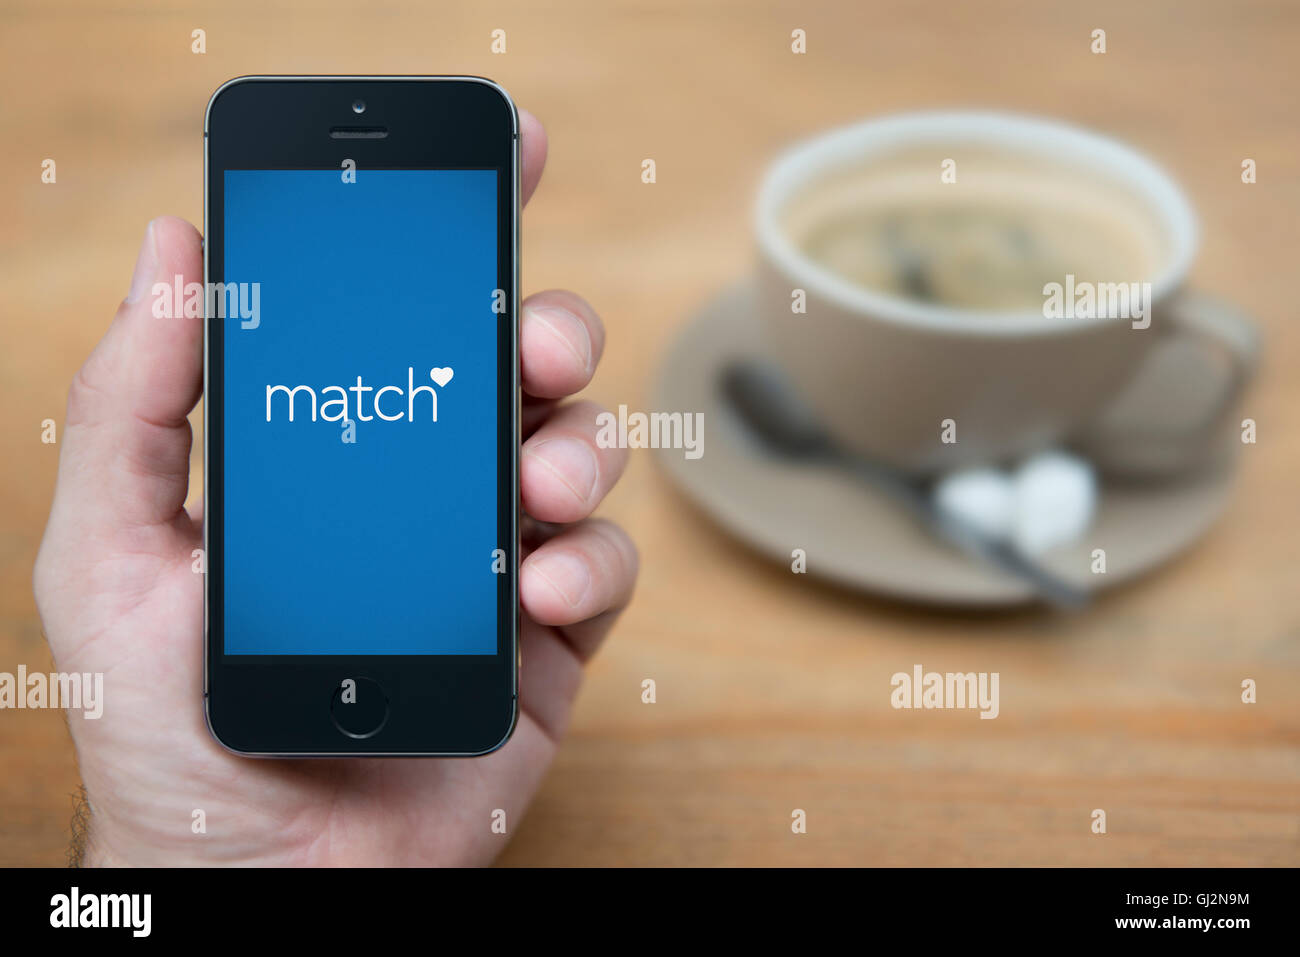 A man looks at his iPhone which displays the Match logo, while sat with a cup of coffee (Editorial use only). - Stock Image